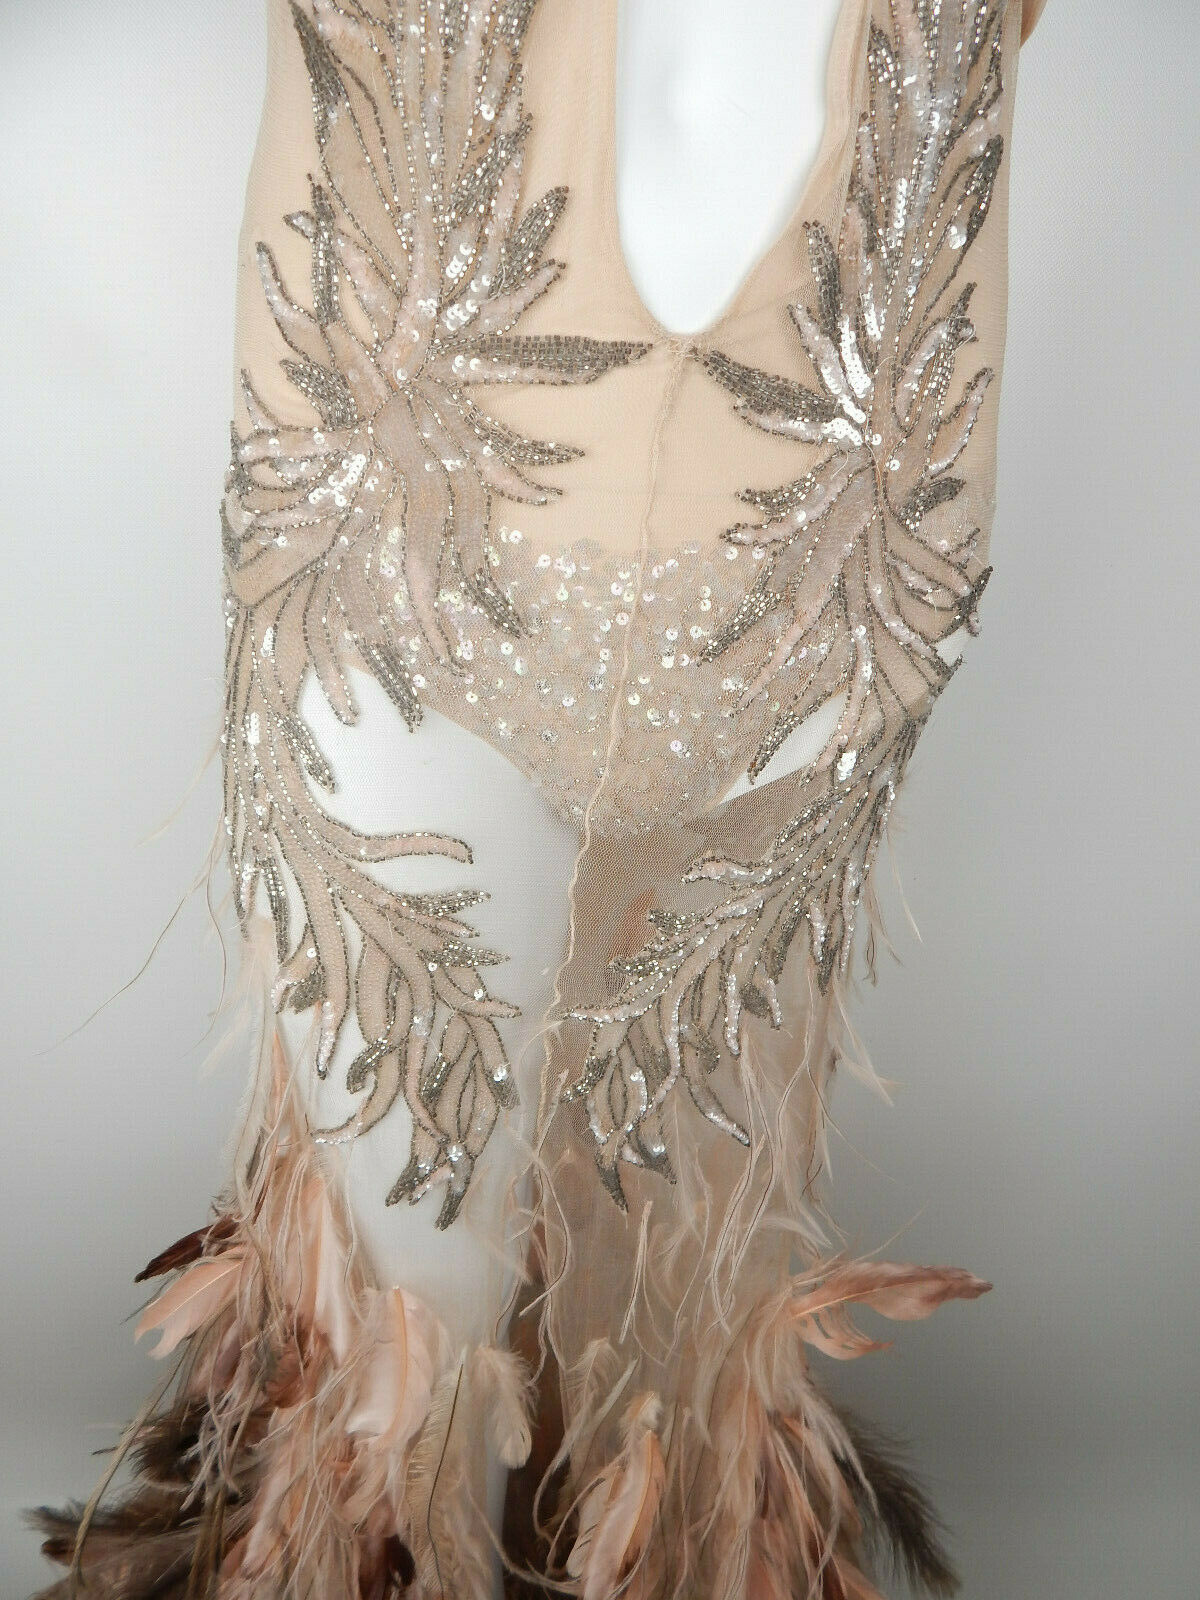 Roberto Cavalli FW2003 Blush Crystal Feather Gown - image 11